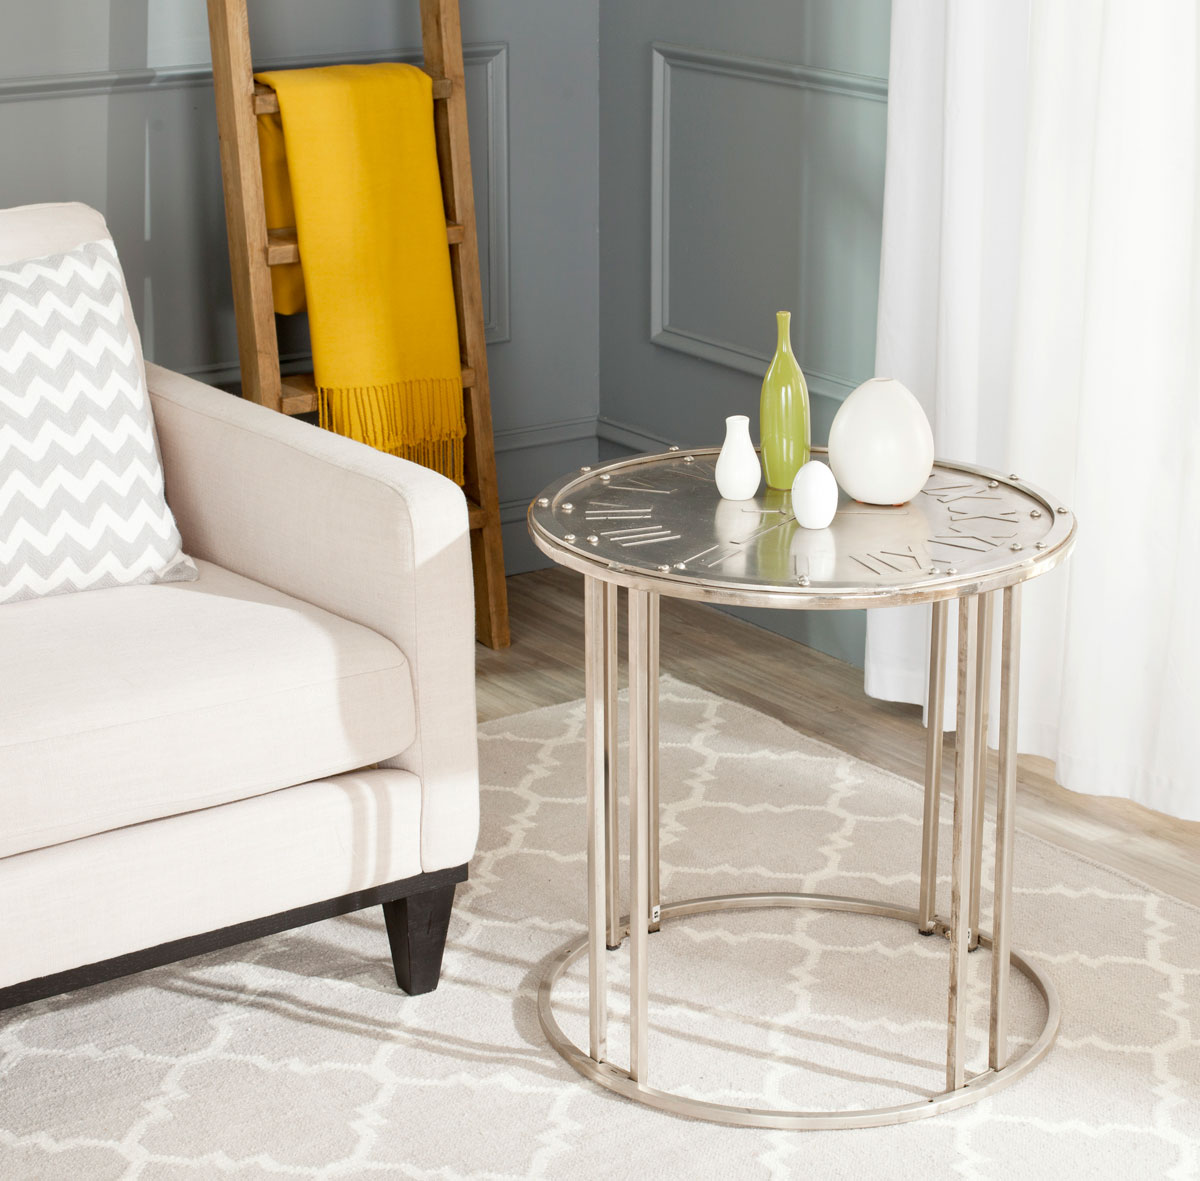 accent tables nightstands furniture safavieh room end table with clock stainless fridge large round lace tablecloths victorian coffee marble top inch tablecloth sofa dog crate diy